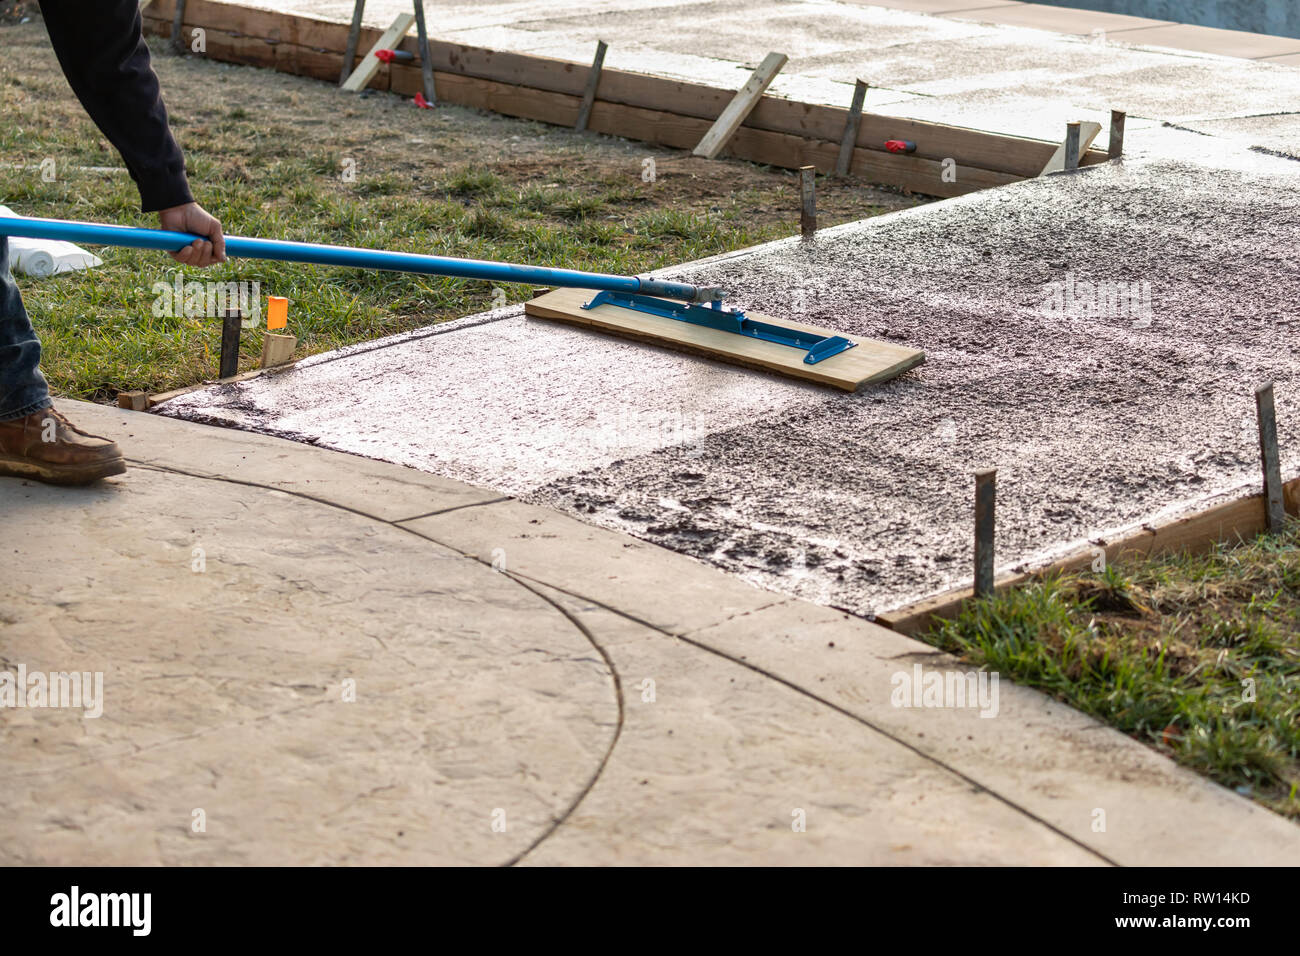 Construction Worker Smoothing Wet Cement With Trowel Tool